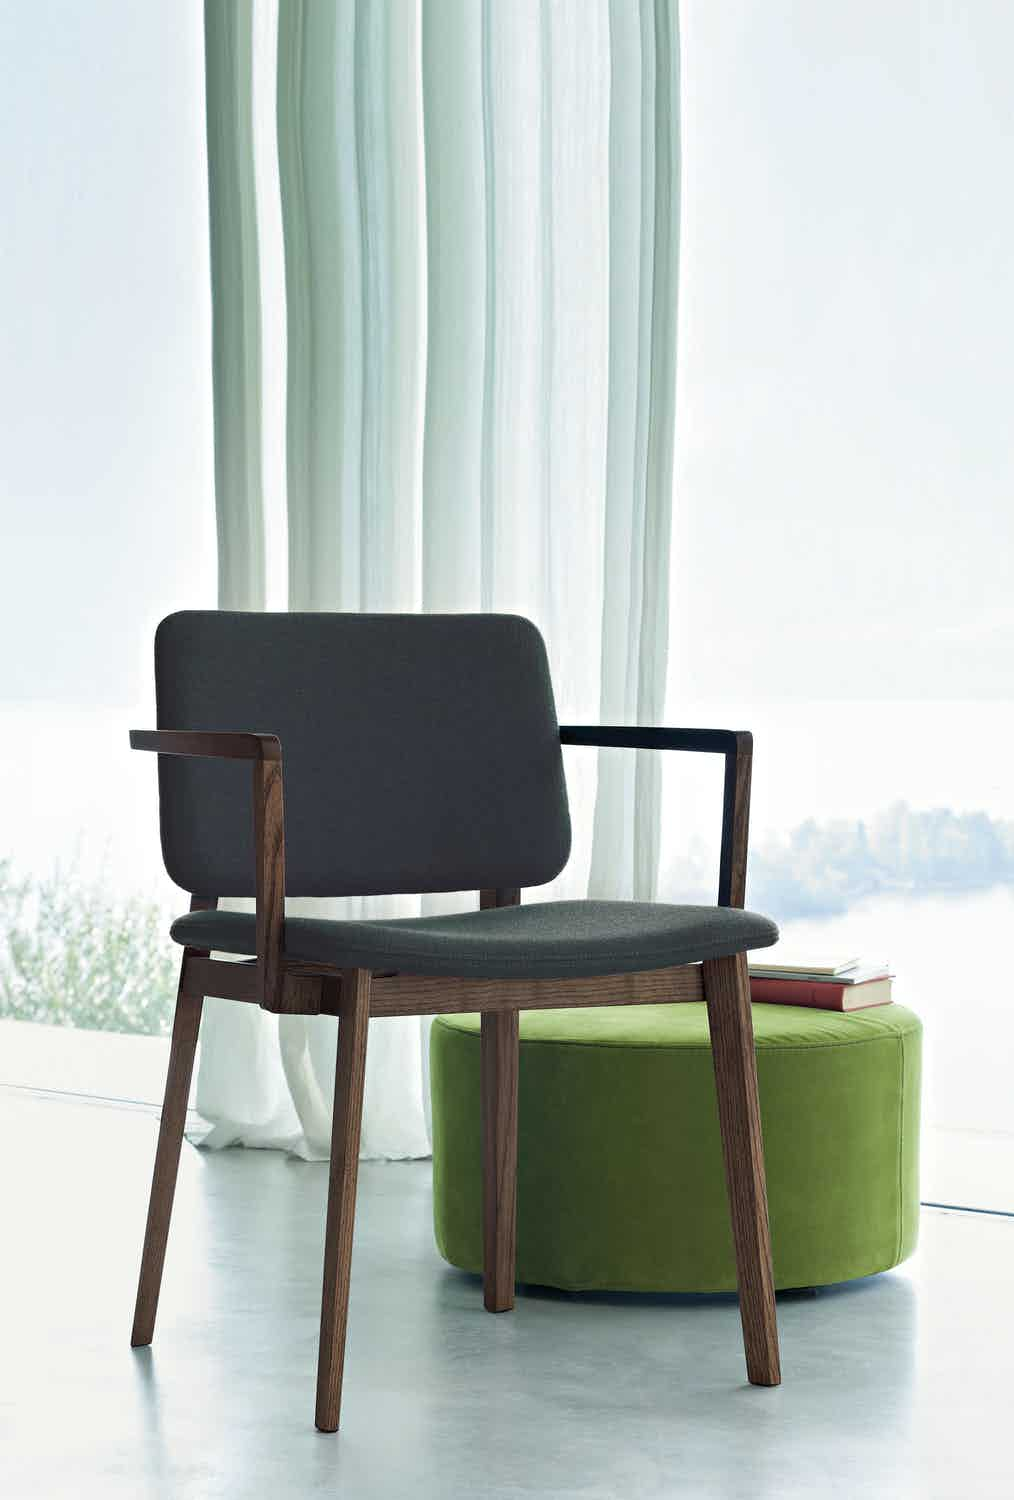 Lema furniture insitu hati chair haute living copy